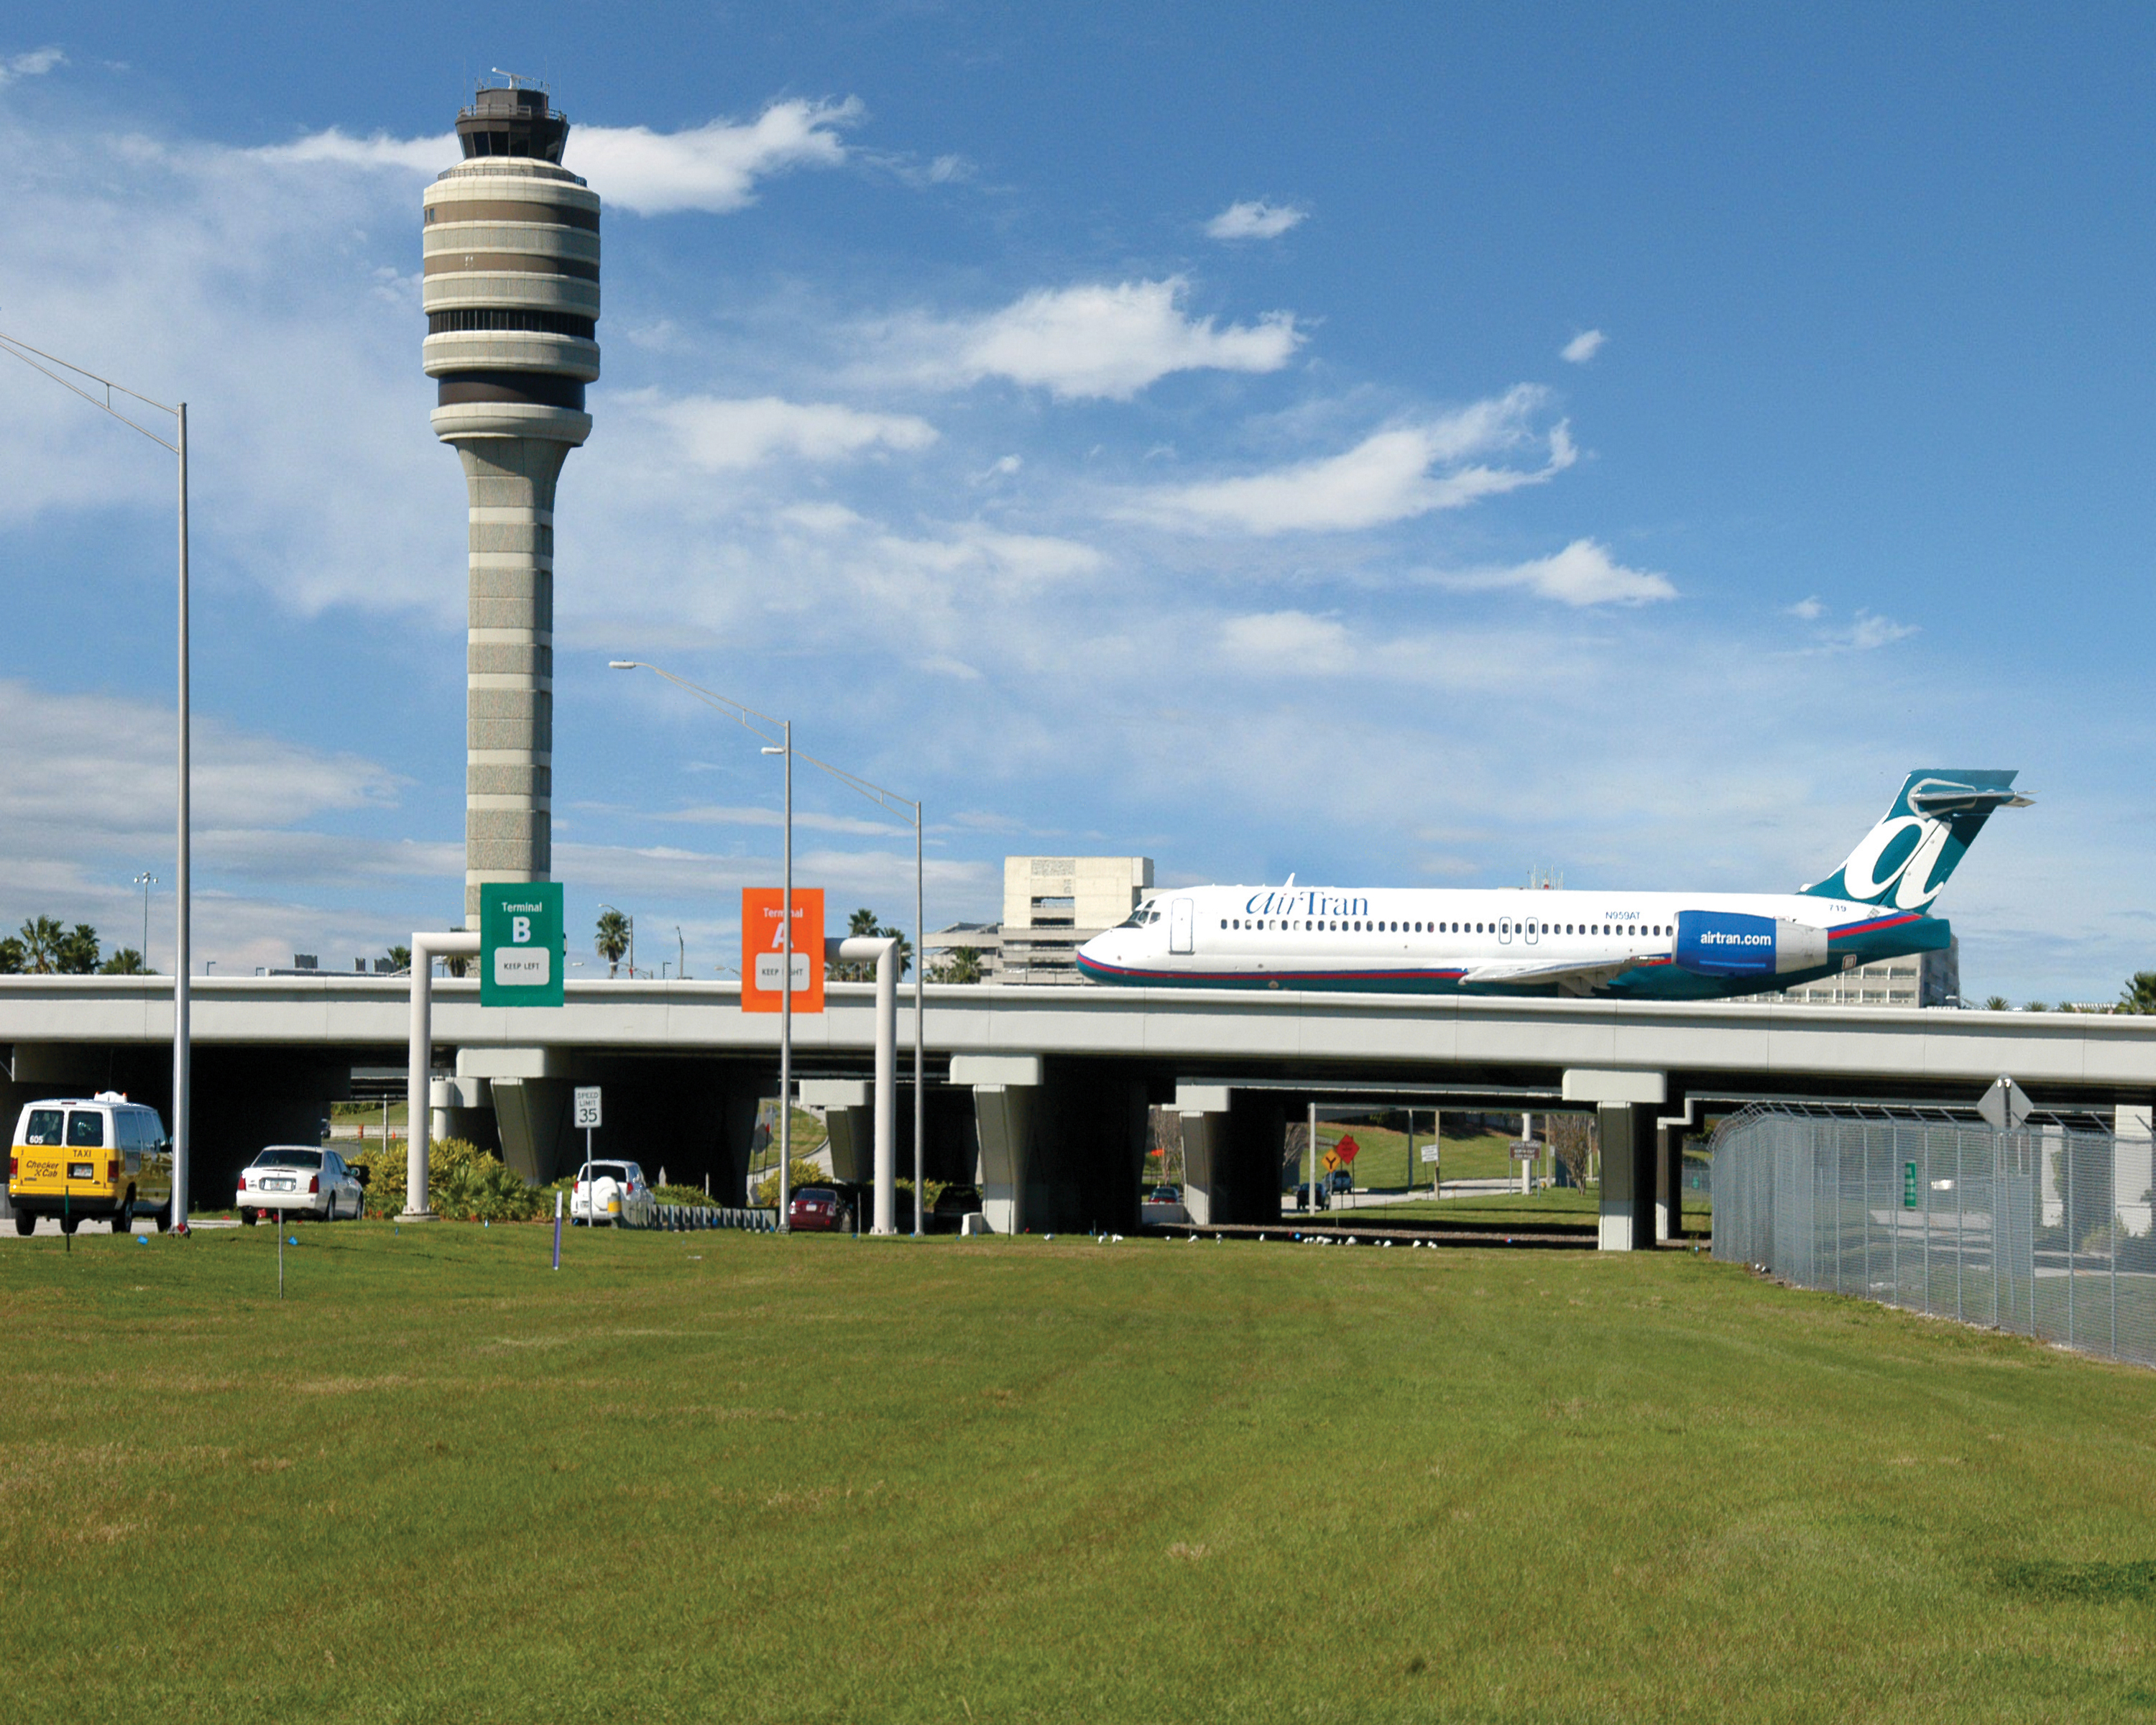 FAA Tower & AirTran